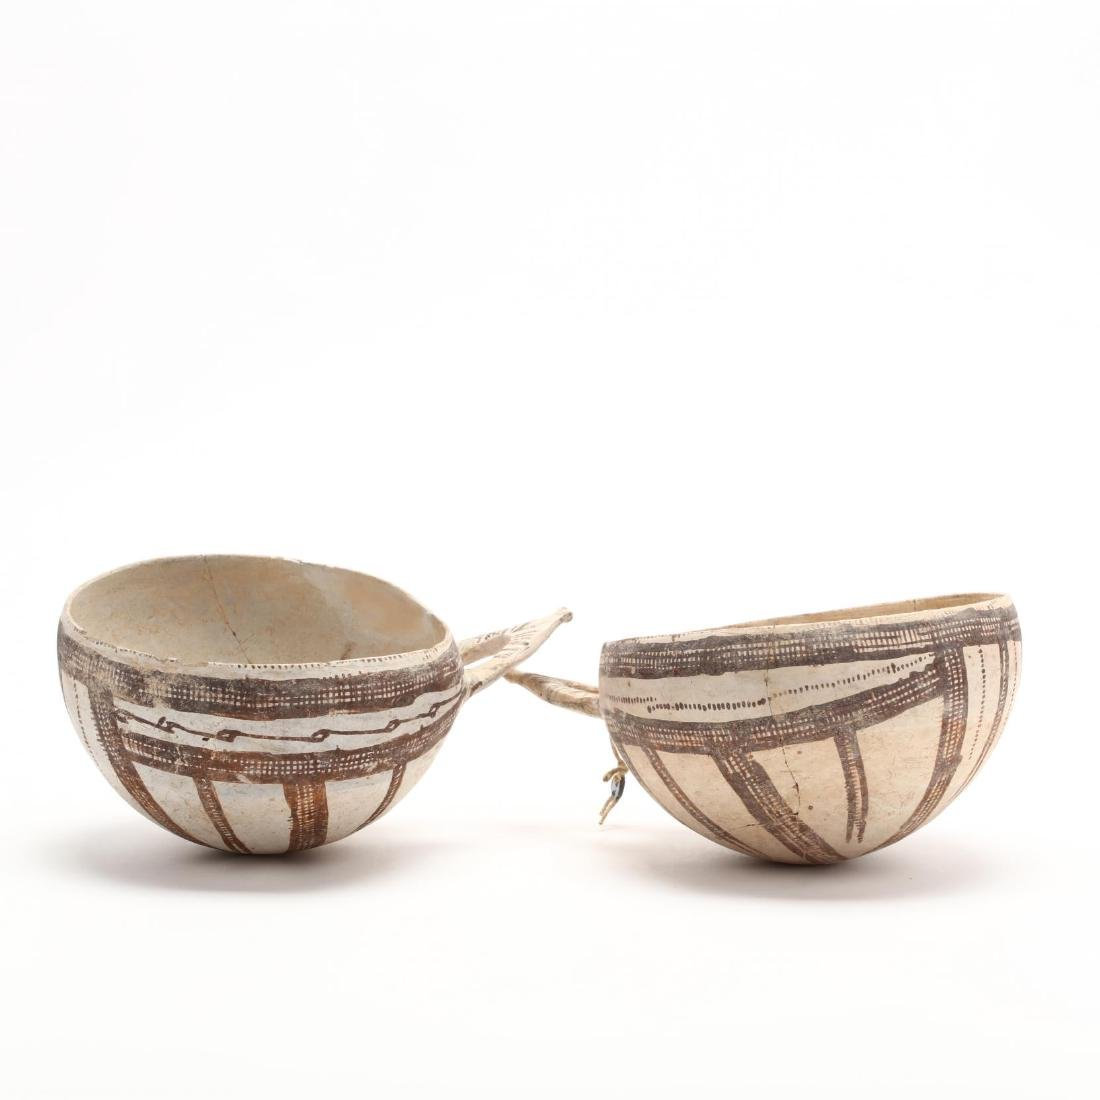 Pair of Cypriot Late Bronze Age White Slip Bowls